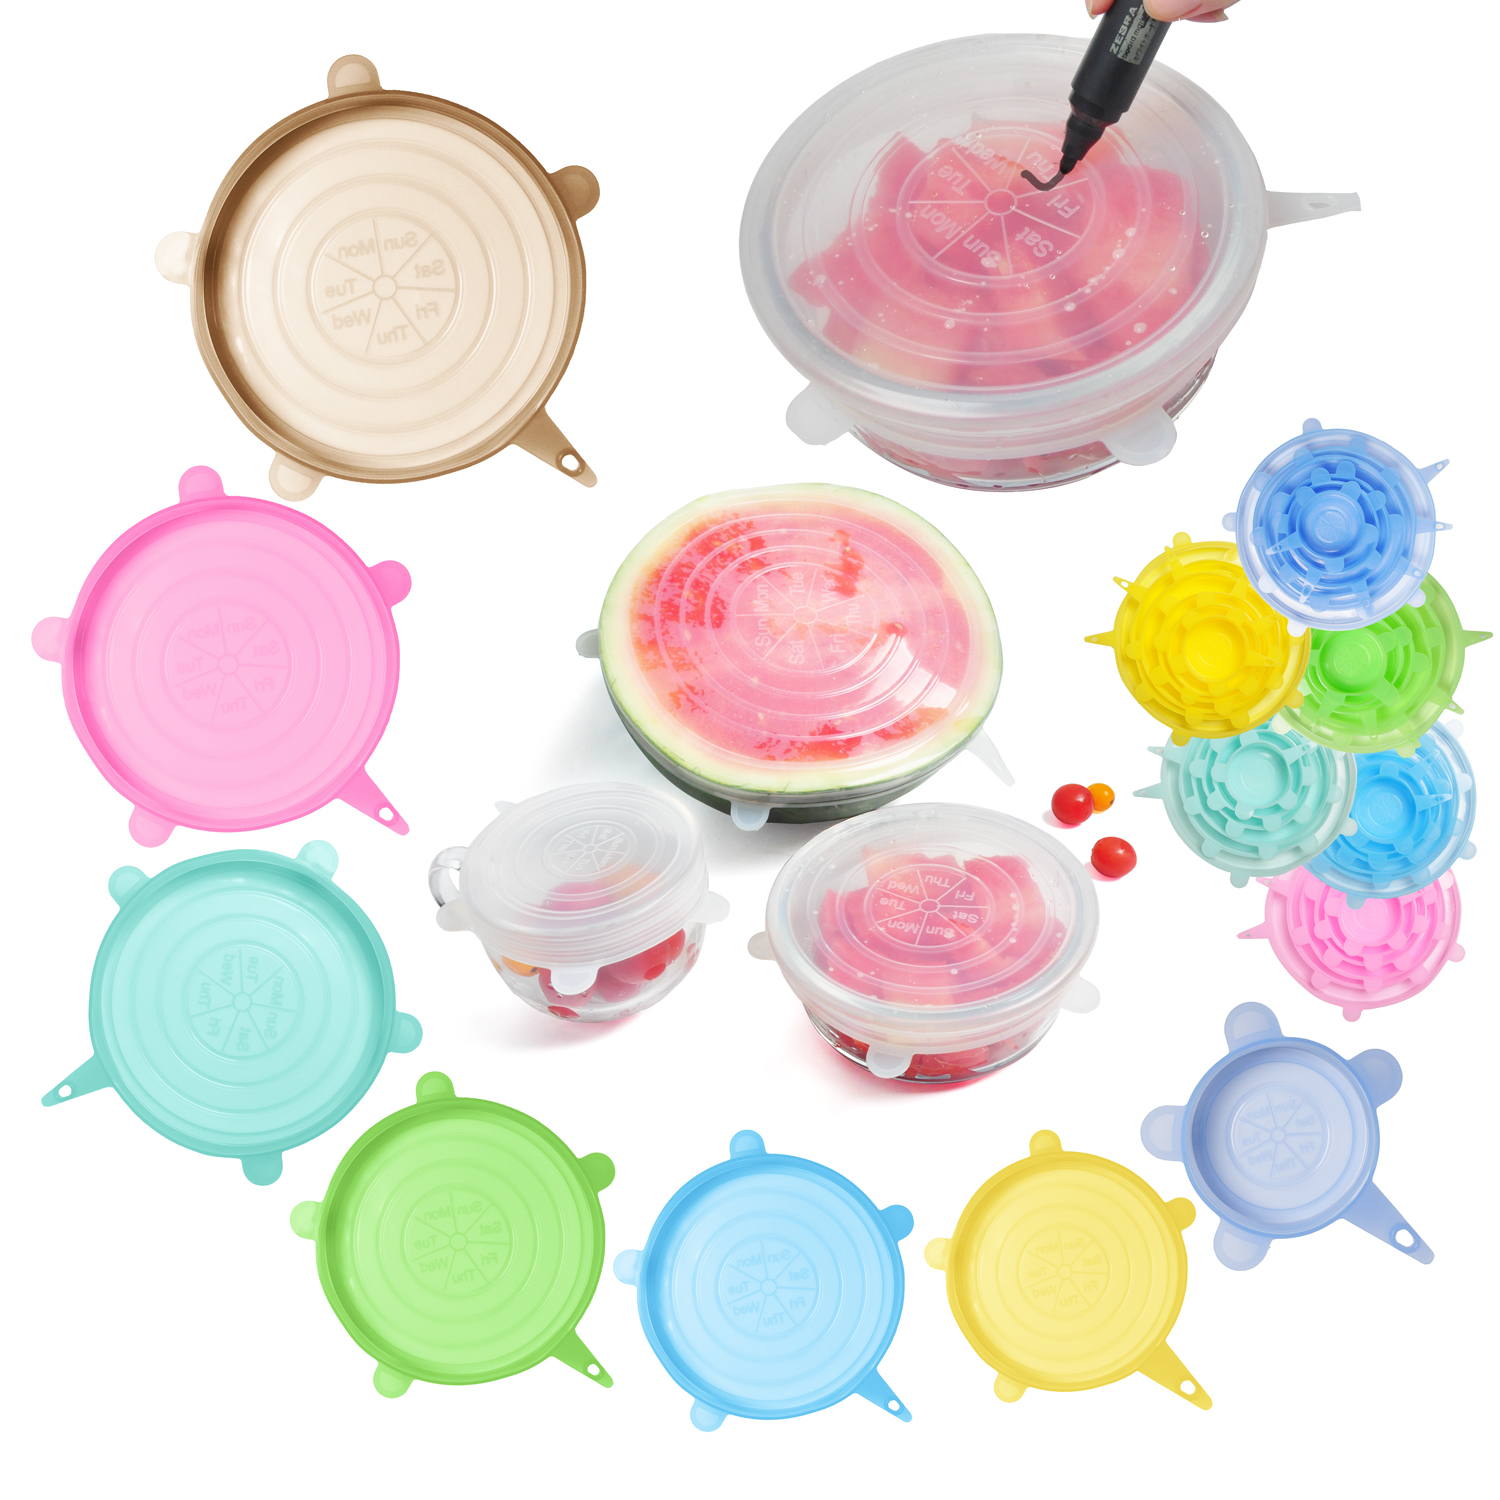 Food grade silicone lid seal silicone stretch lids silicone storage lids